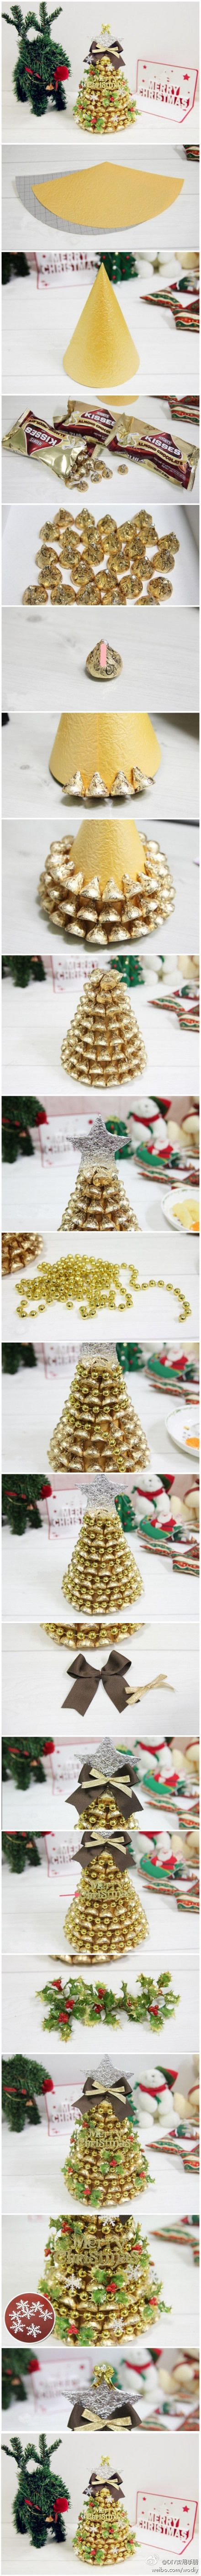 DIY Kisses Christmas decoration #diy #craft